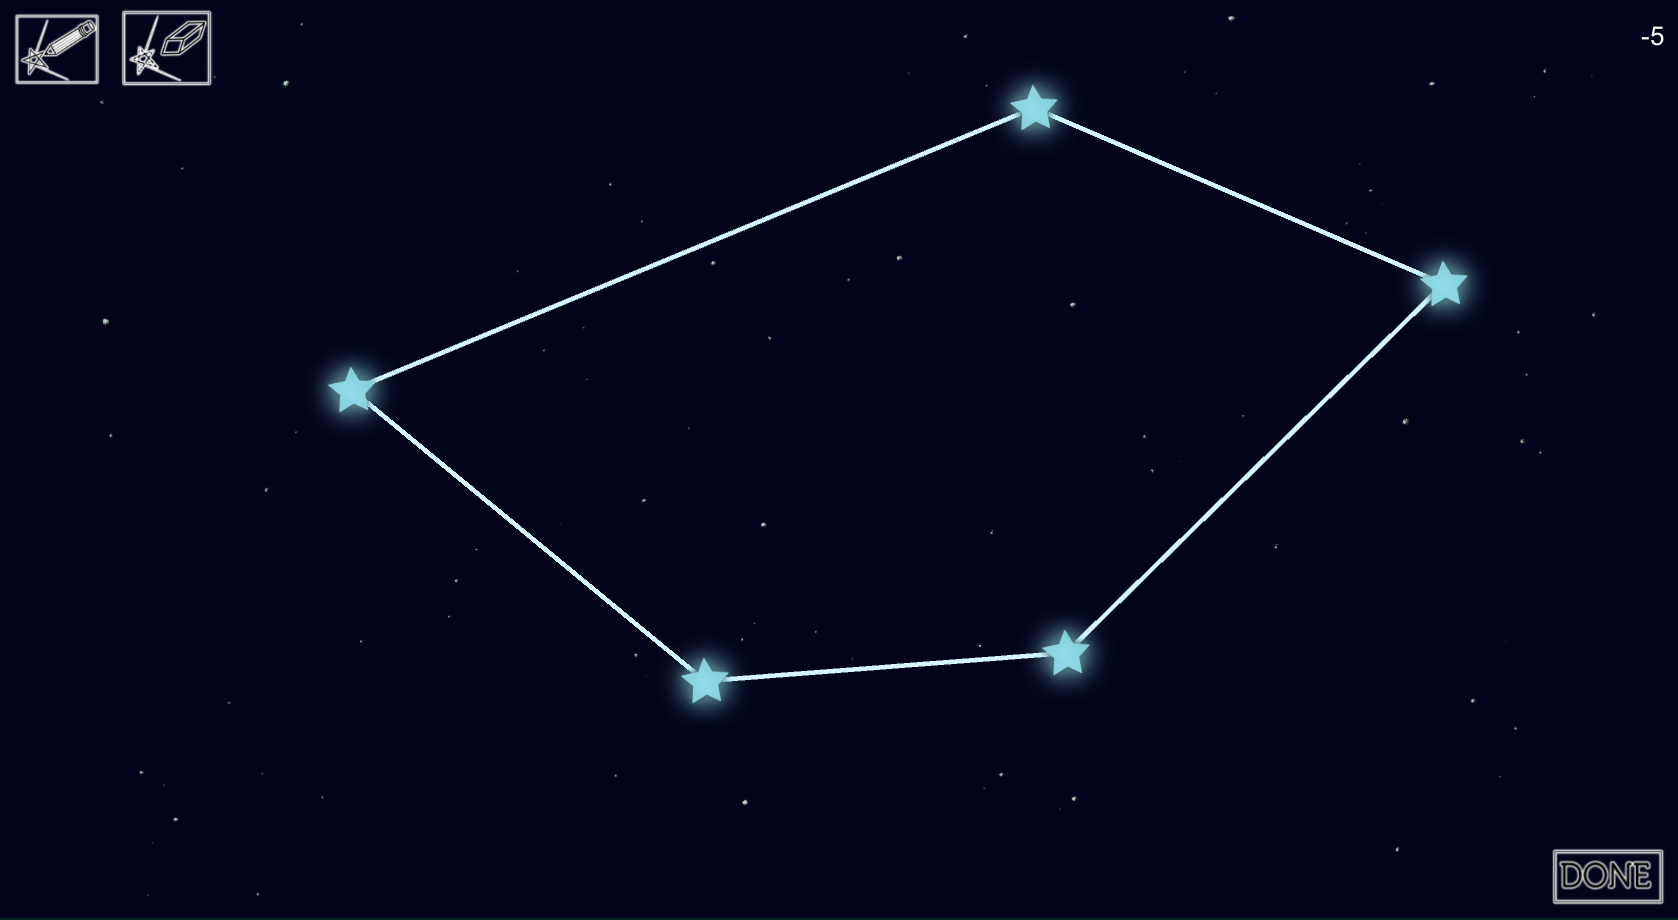 Updated constellation drawing with memory game.